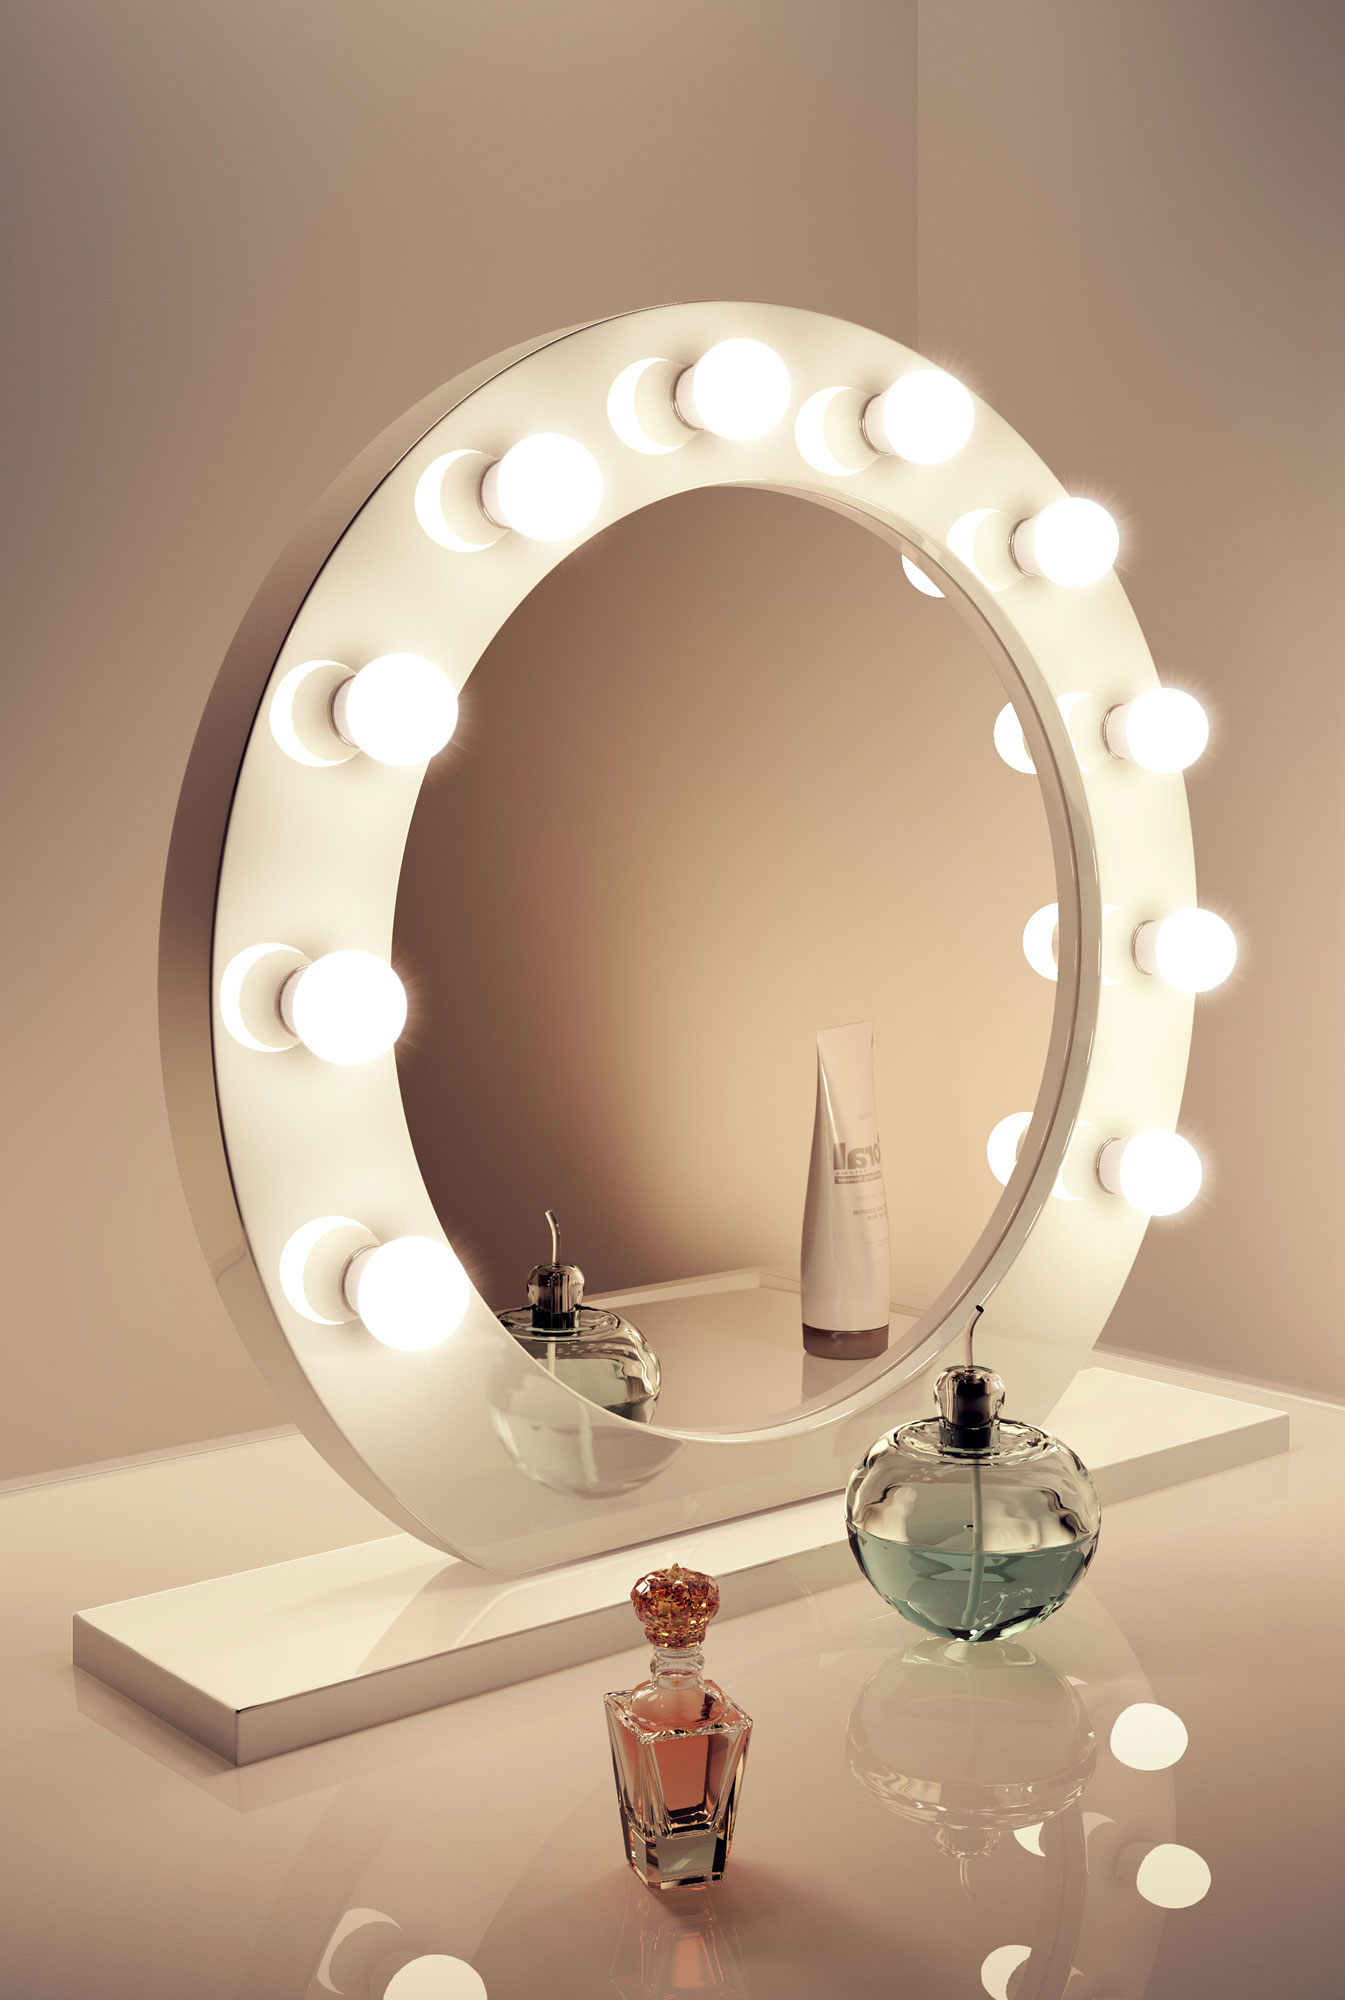 Vanity Mirror With Lights All Round : High Gloss White Round Hollywood Makeup Mirror with Warm White LED lamps k248WW eBay